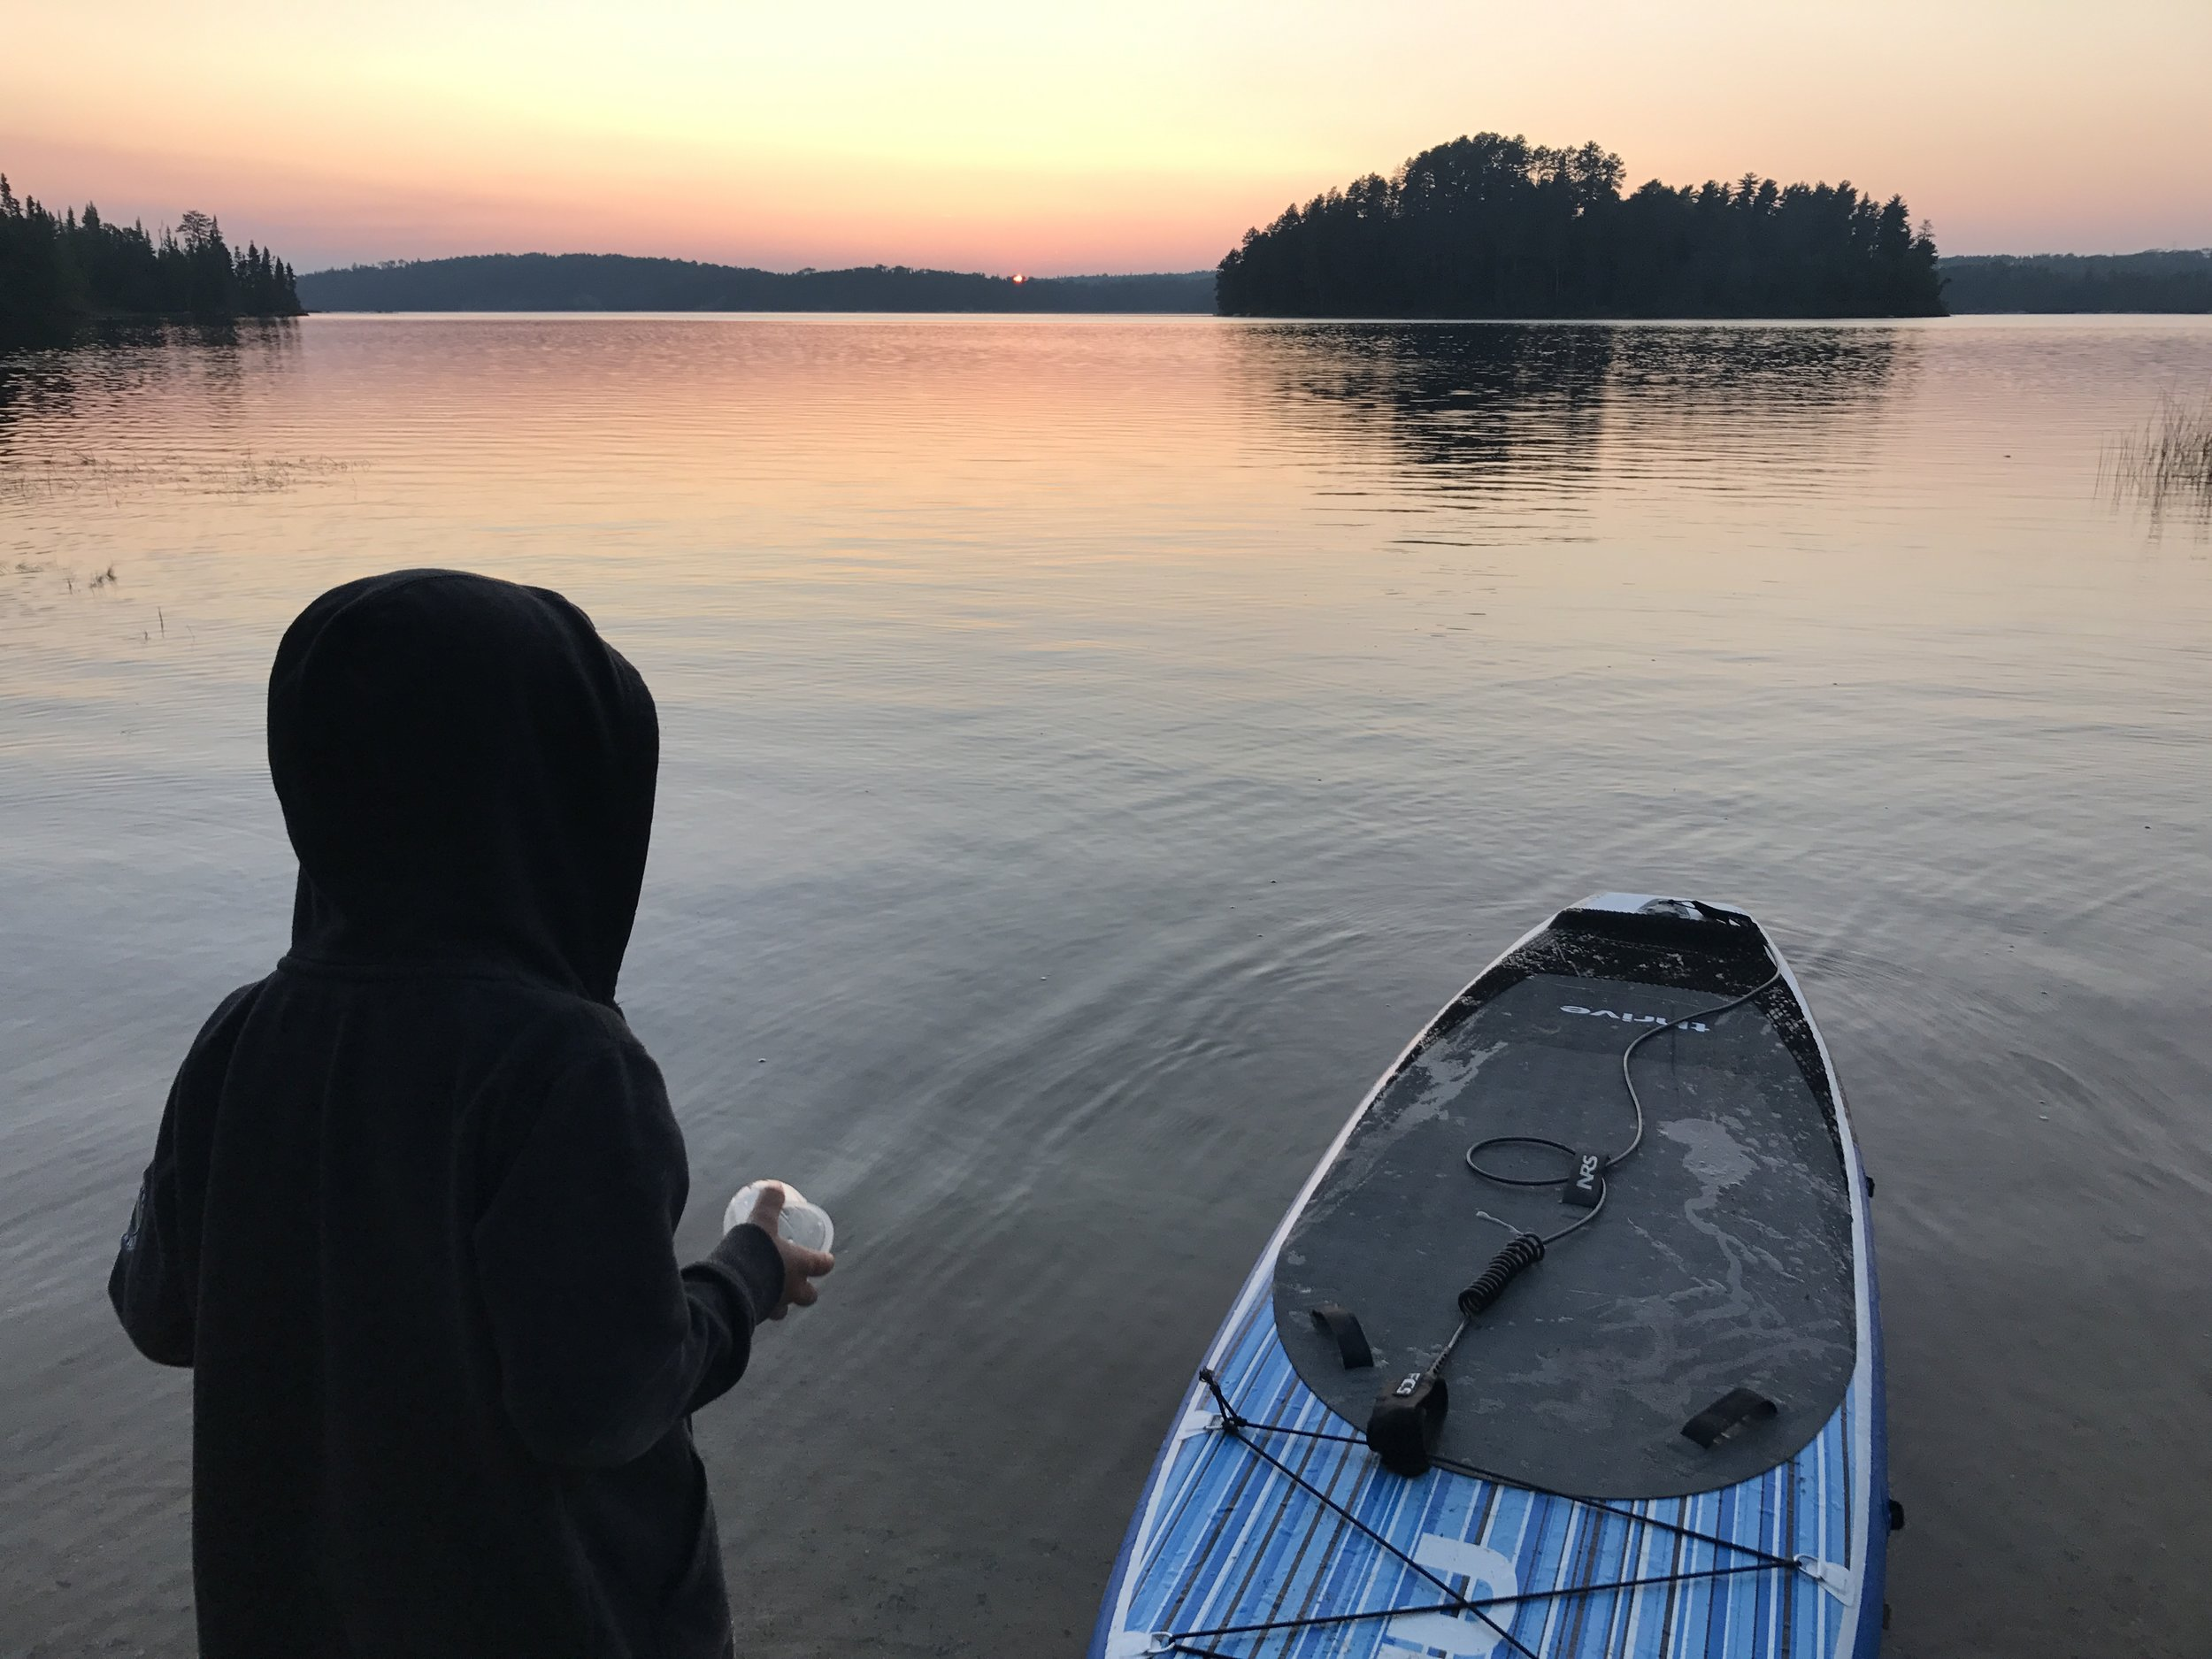 Goodnight Quetico and summer roadie, you were something else!